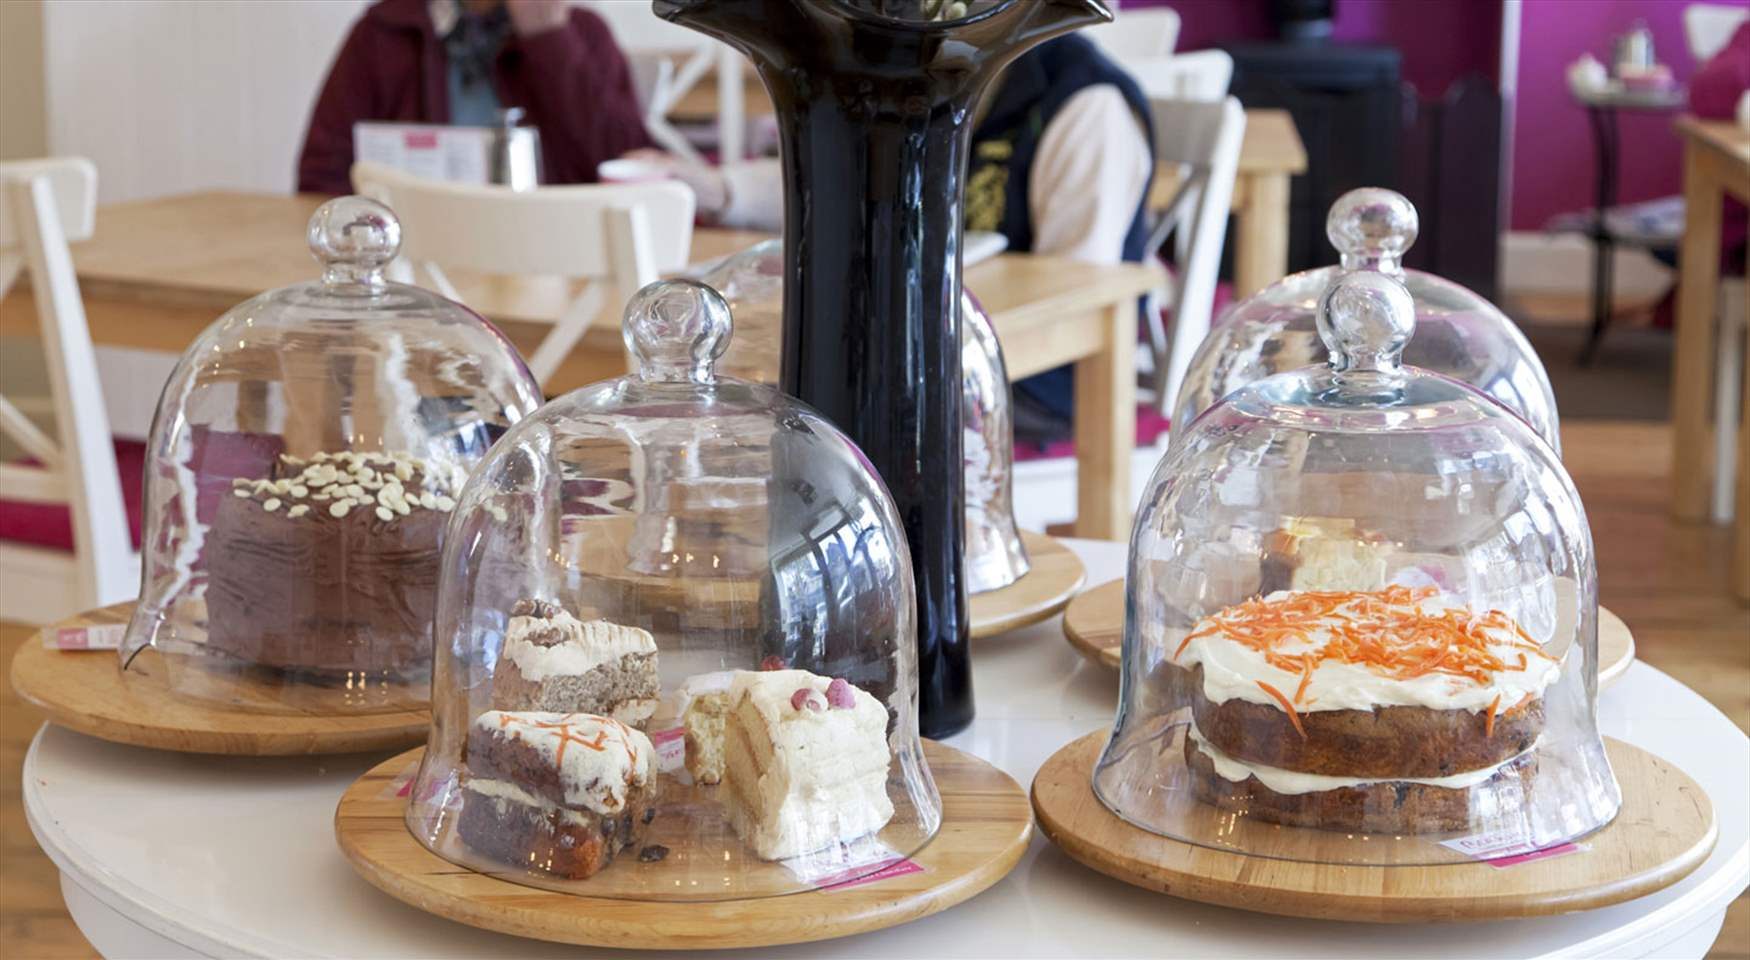 Beatons Tearoom and Cakes